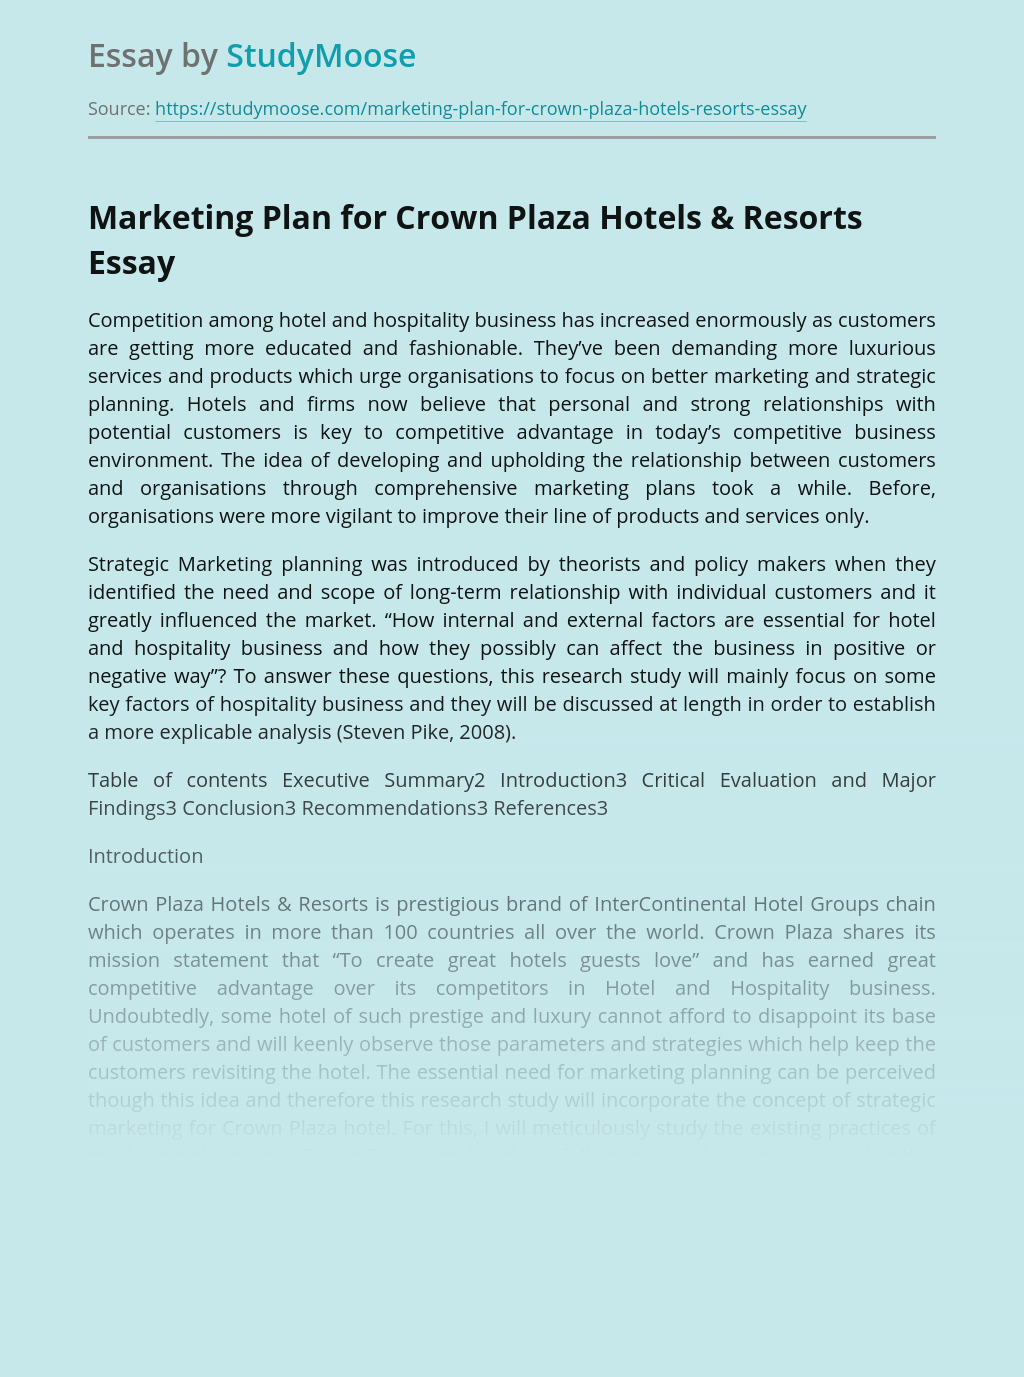 Marketing Plan for Crown Plaza Hotels & Resorts